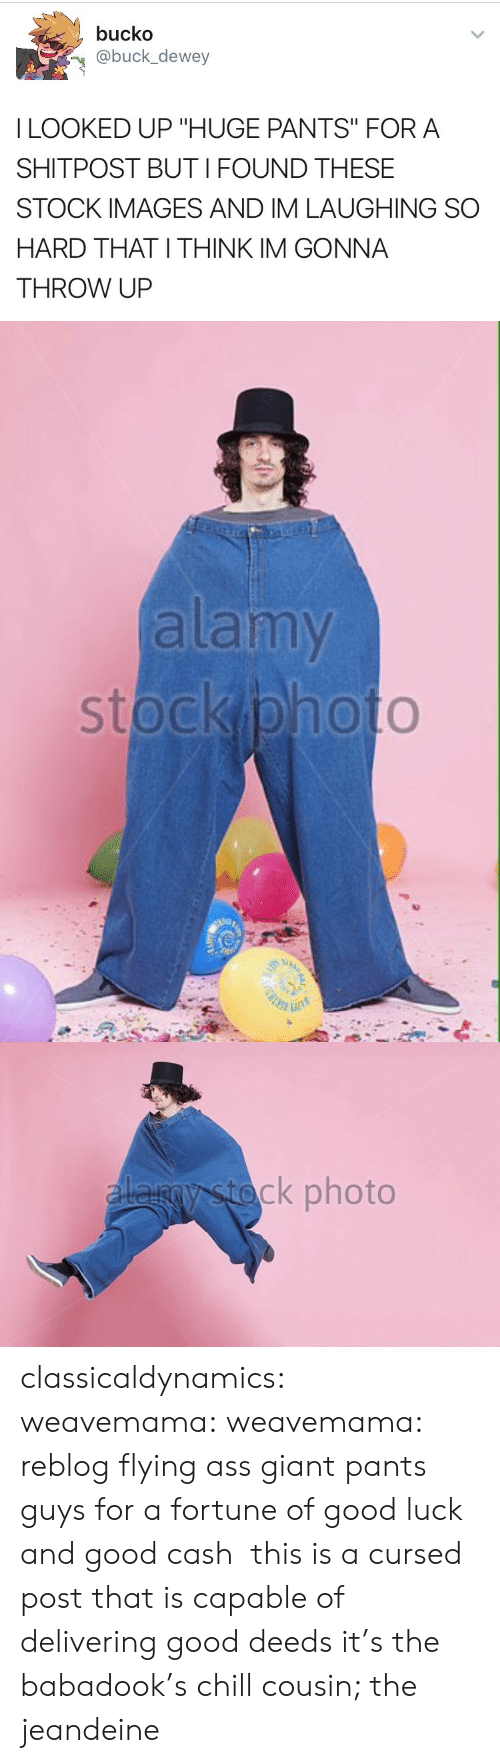 """stock images: bucko  @buck_dewey  I LOOKED UP """"HUGE PANTS"""" FORA  SHITPOST BUTI FOUND THESE  STOCK IMAGES AND IM LAUGHING SO  HARD THAT I THINK IM GONNA  THROW UP   alamy   ck photo classicaldynamics: weavemama:  weavemama:  reblog flying ass giant pants guys for a fortune of good luck and good cash  this is a cursed post that is capable of delivering good deeds  it's the babadook's chill cousin; the jeandeine"""